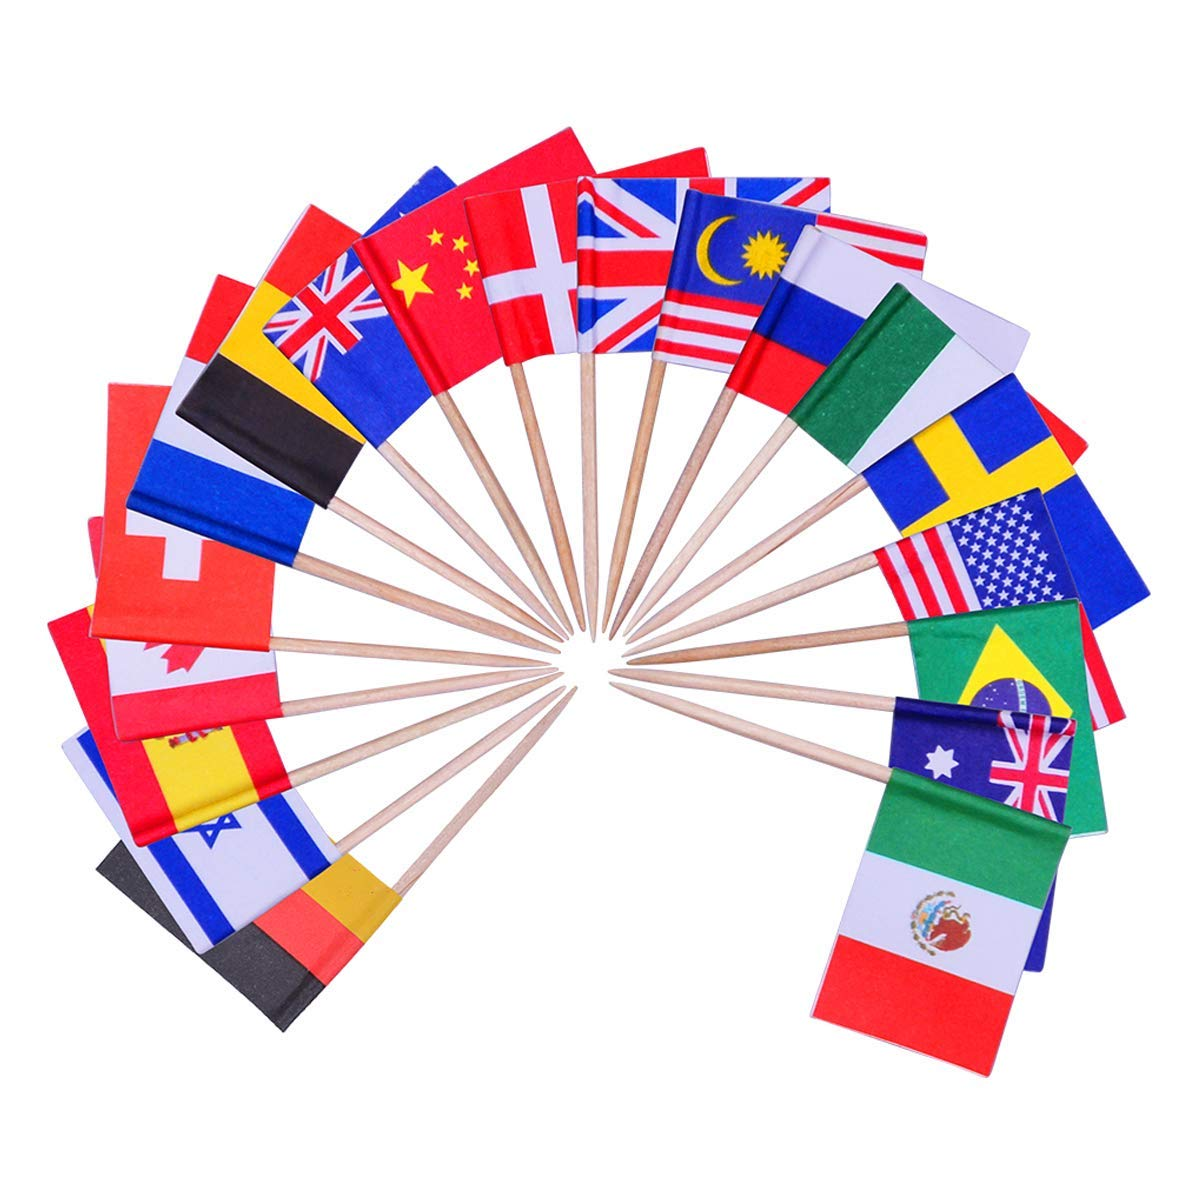 fdd8e26b9a3 YoungRich 100 Pack World Flag Sticks International Flags and Banners Toothpicks  Cocktail Sticks Cupcake Picks Banner